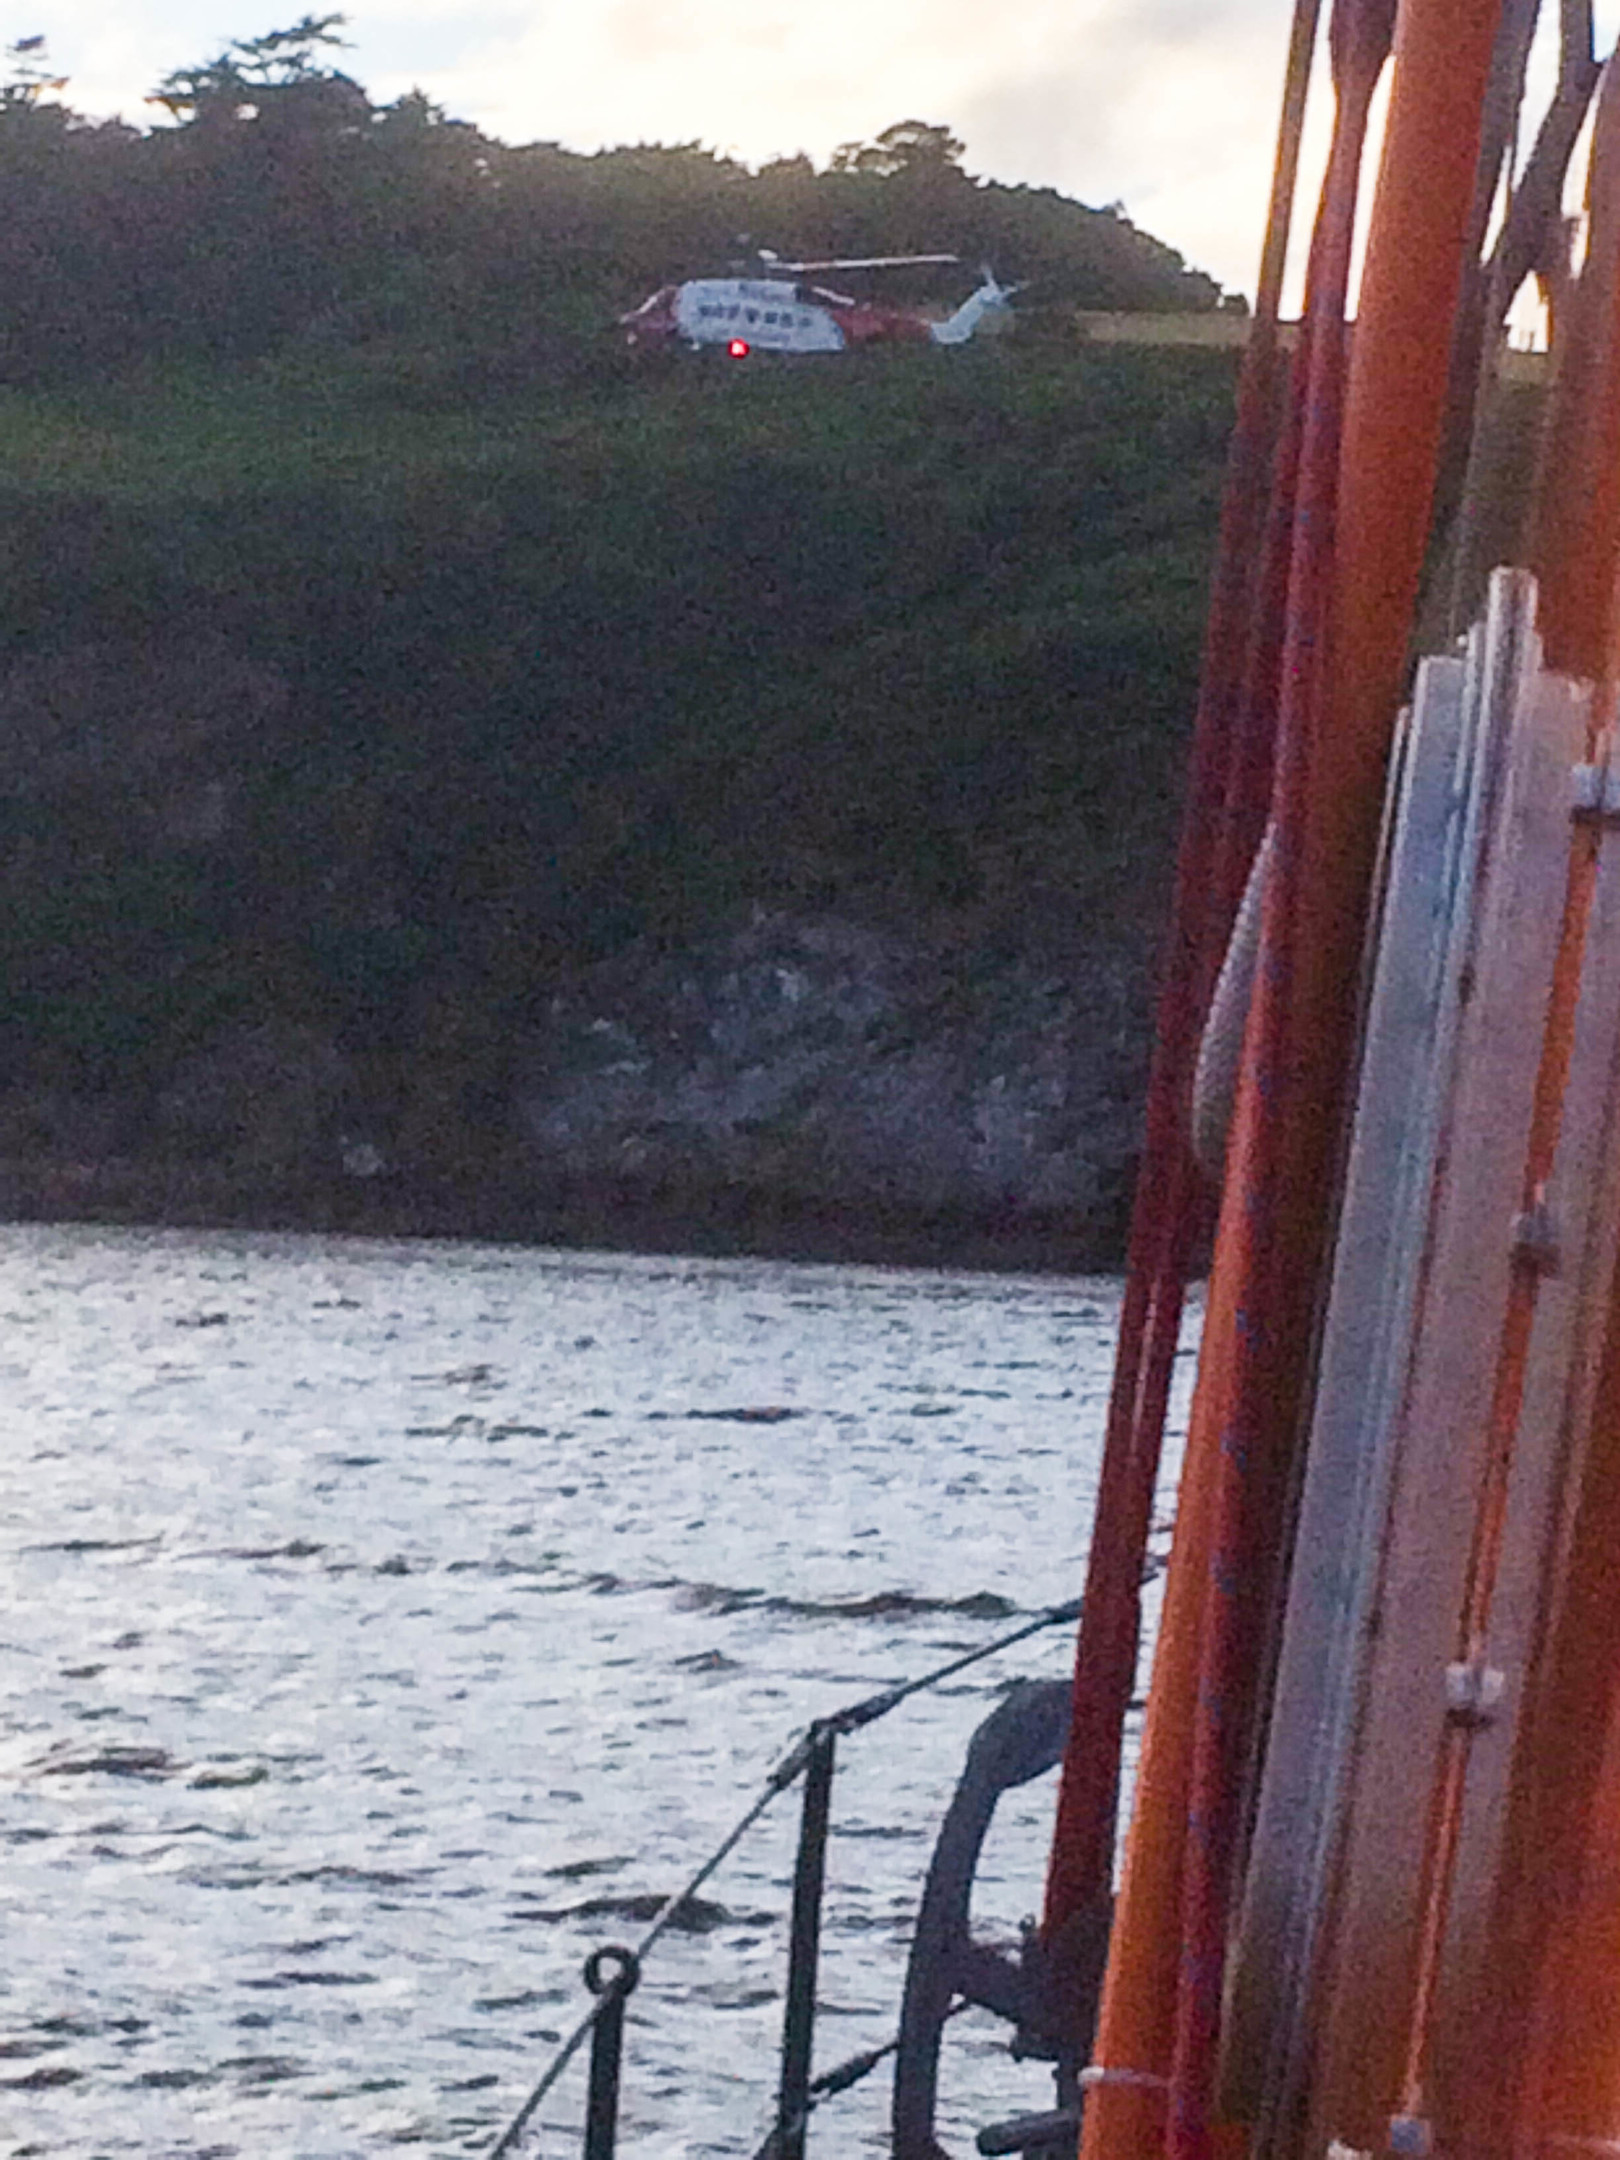 Rescue 951 and Invergordon lifeboat worked together to rescue the teens